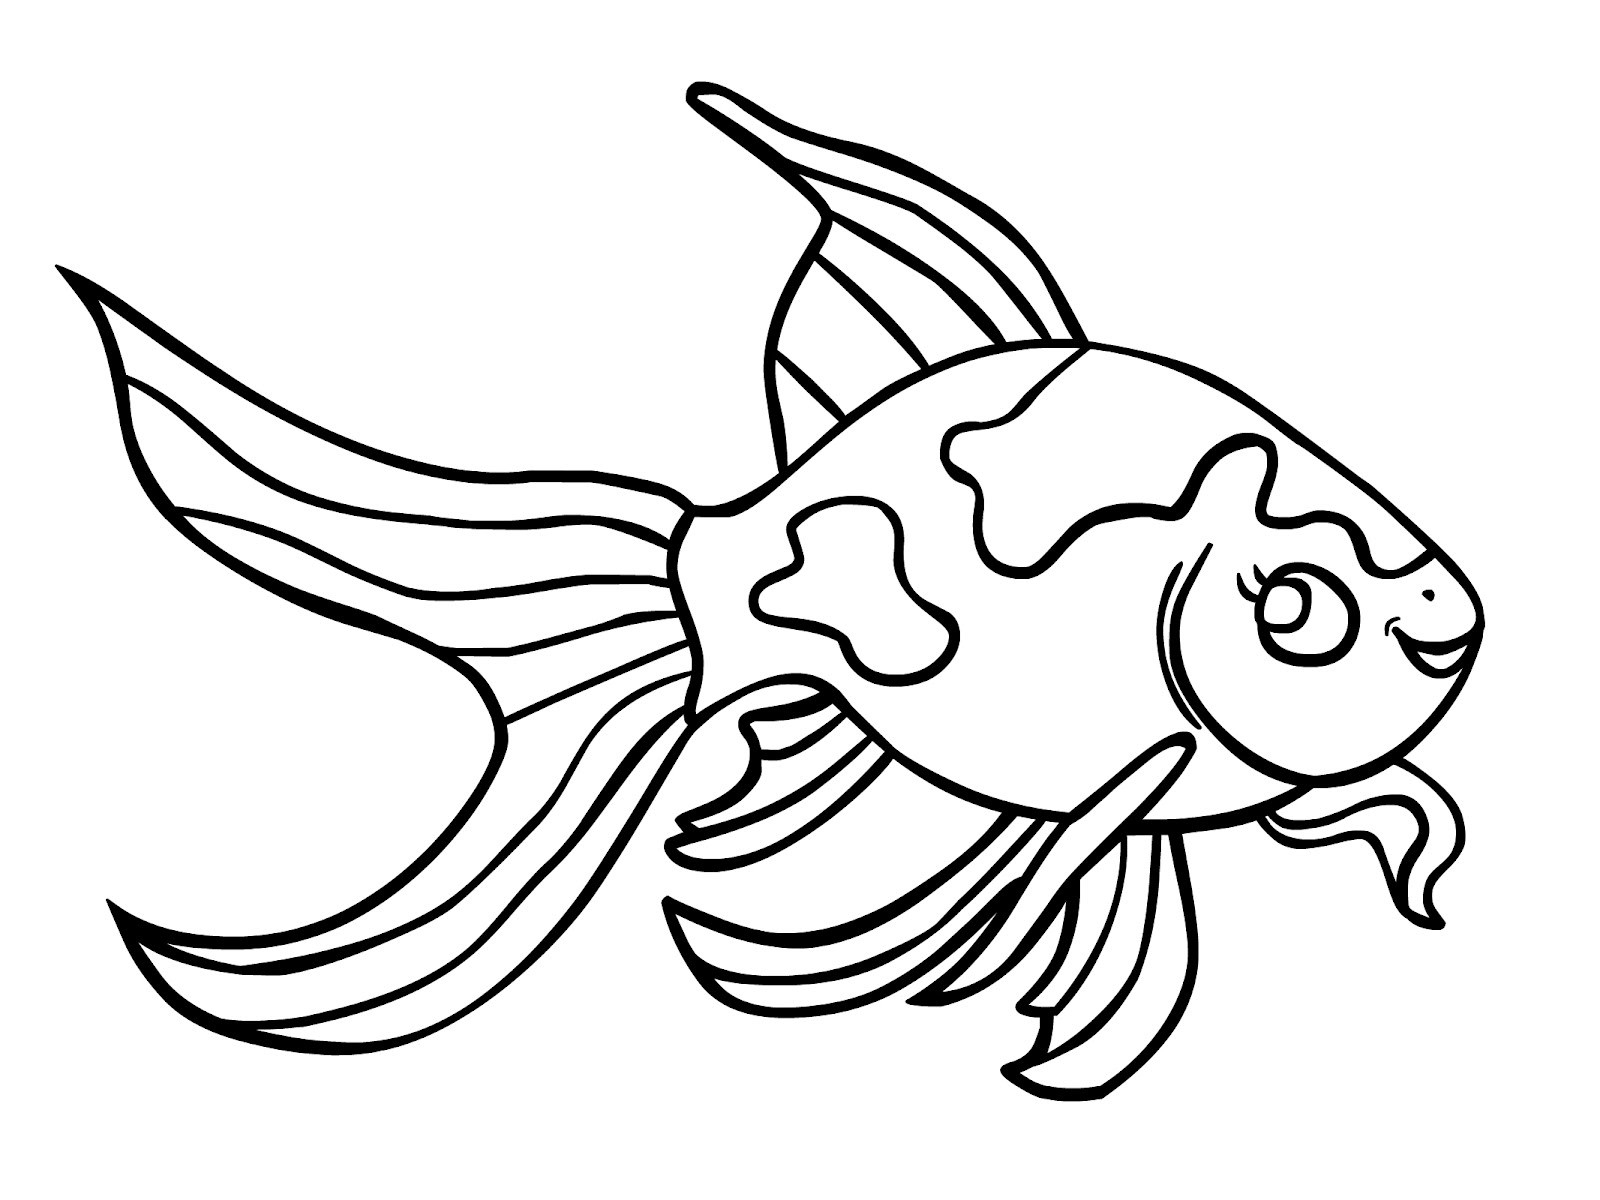 Goldfish Coloring Page Kid Animal Coloring Pages Fish 2 S Hurry Goldfish Page Free